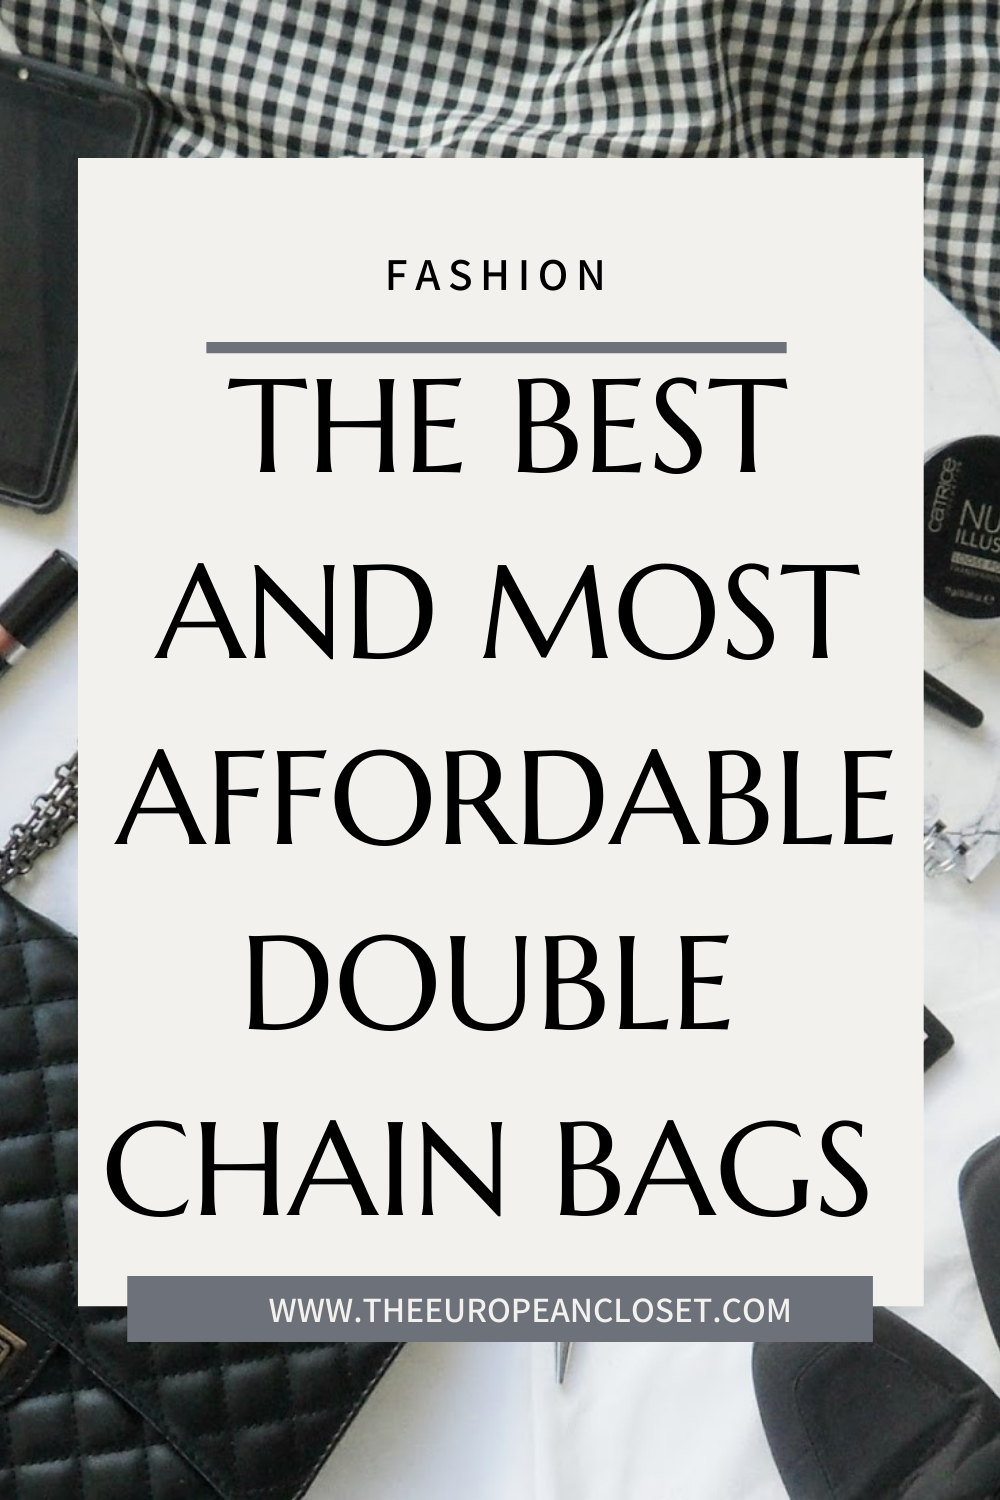 Double chain bags are one of the biggest bag trends this season. Here are the best and most affordable double chain bags!